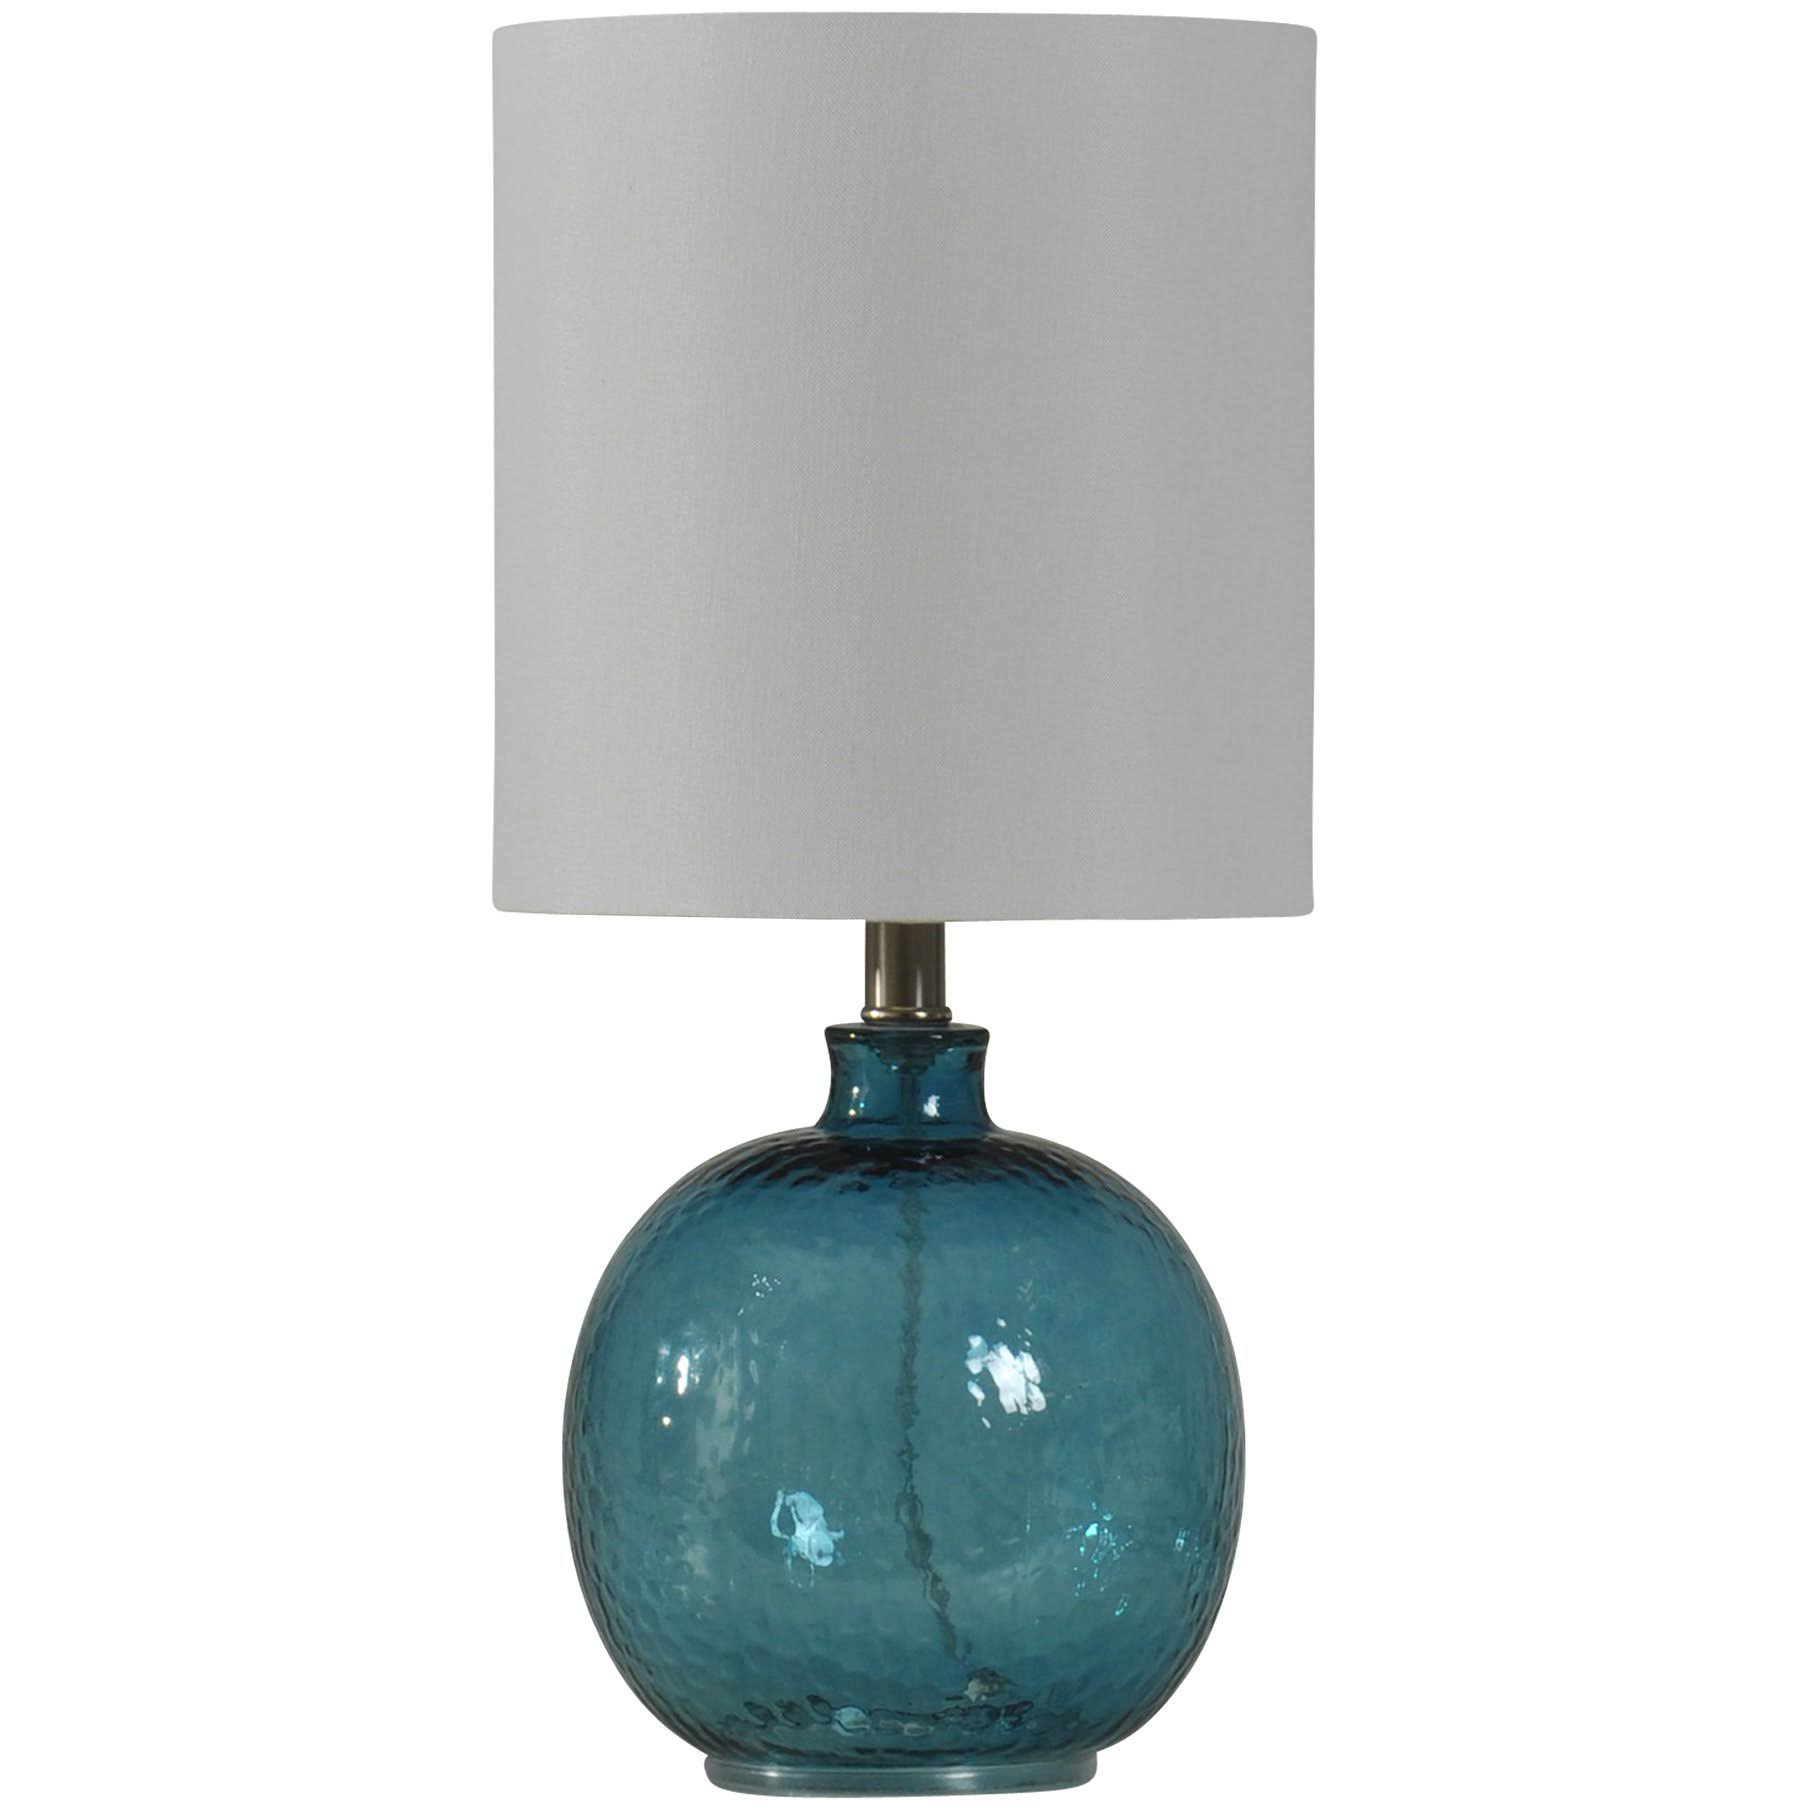 Gwg Outlet Table Lamp in Cerulean Finish L13168DS